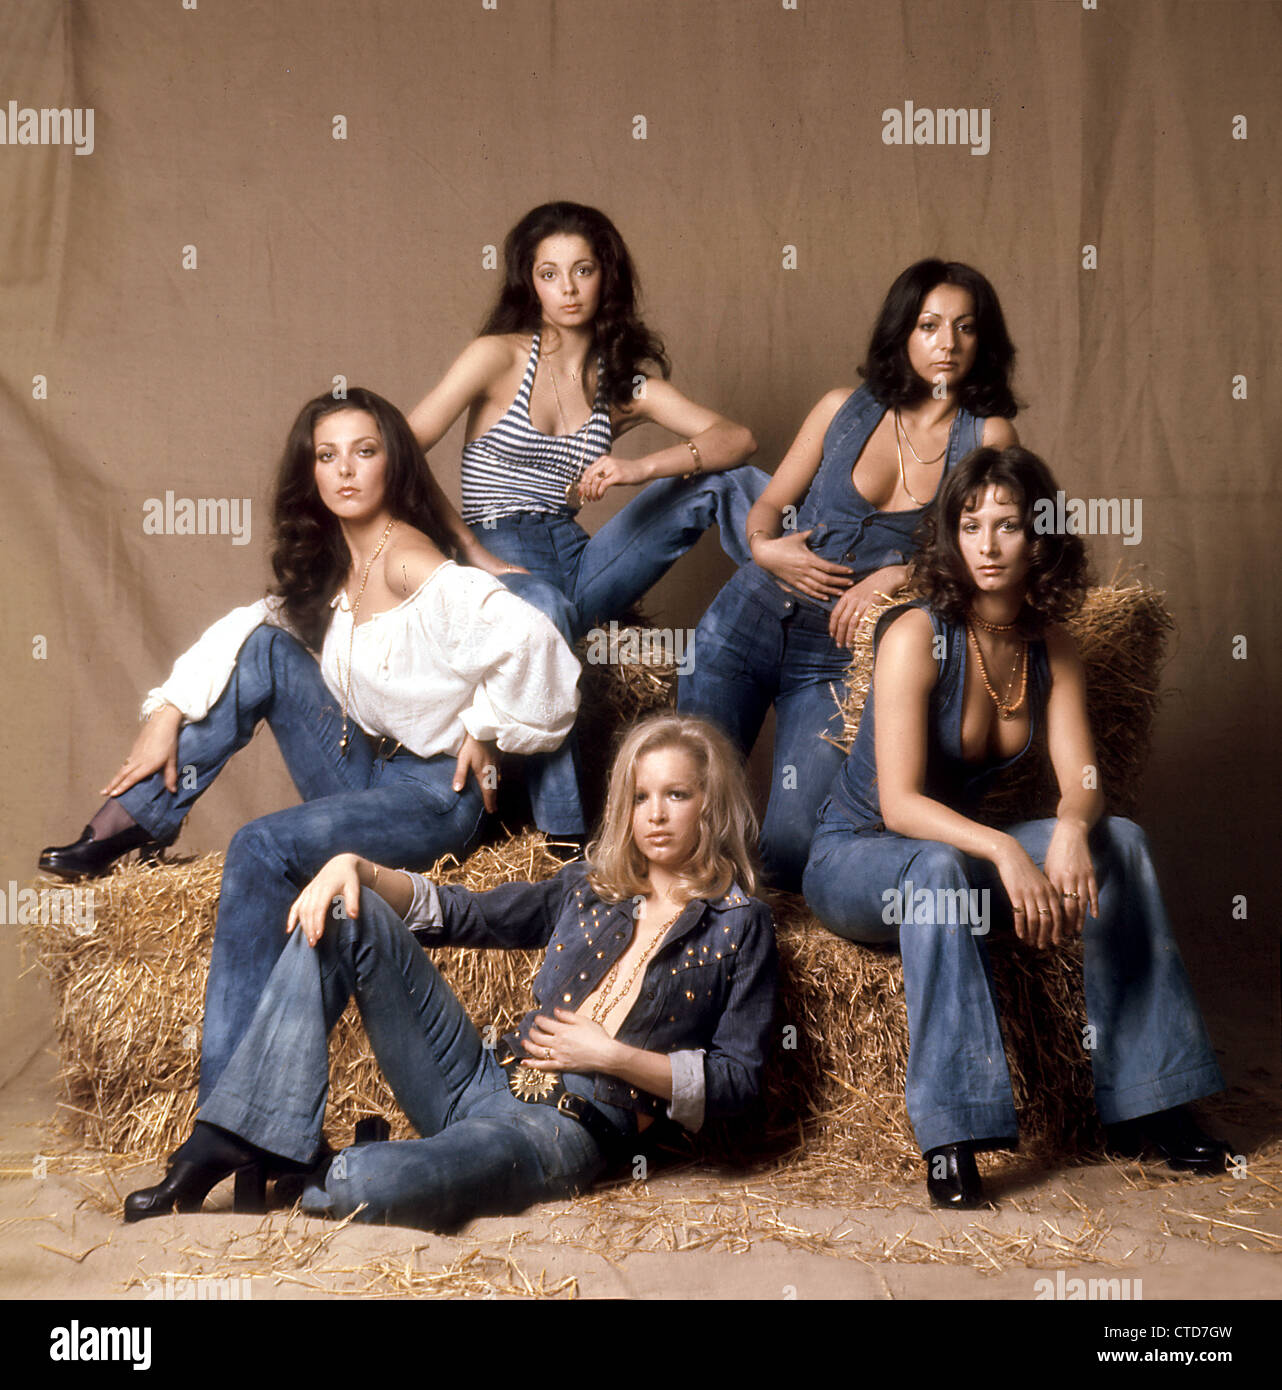 pan s people uk tv dance group about 1970 stock photo 49463817 alamy